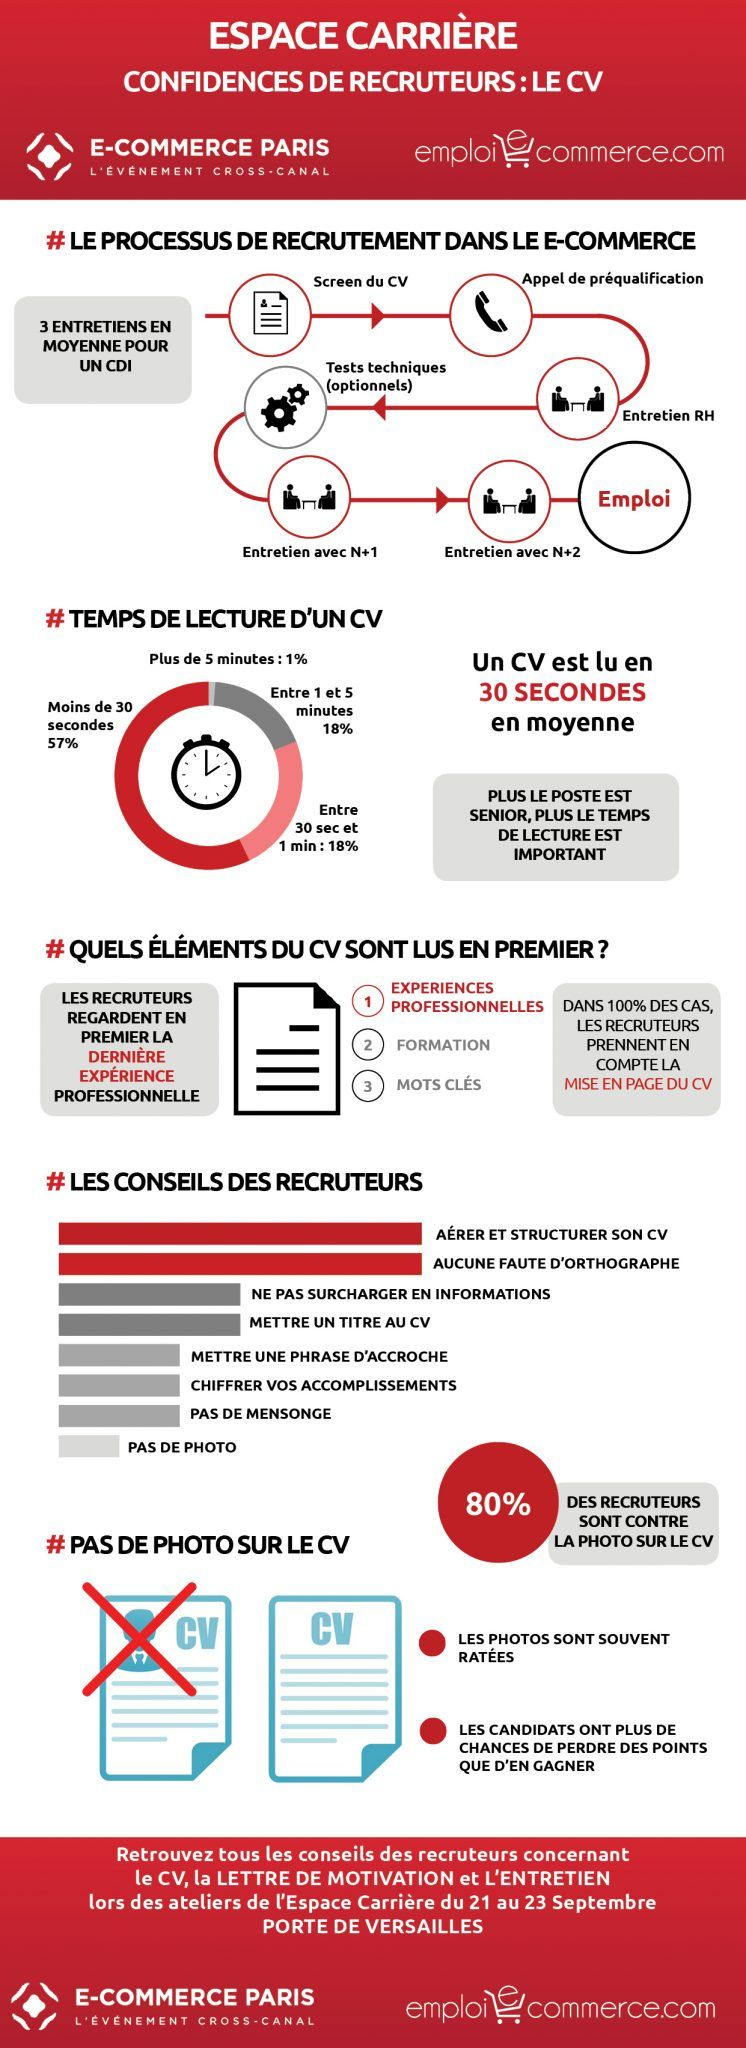 confidences de recruteurs le cv